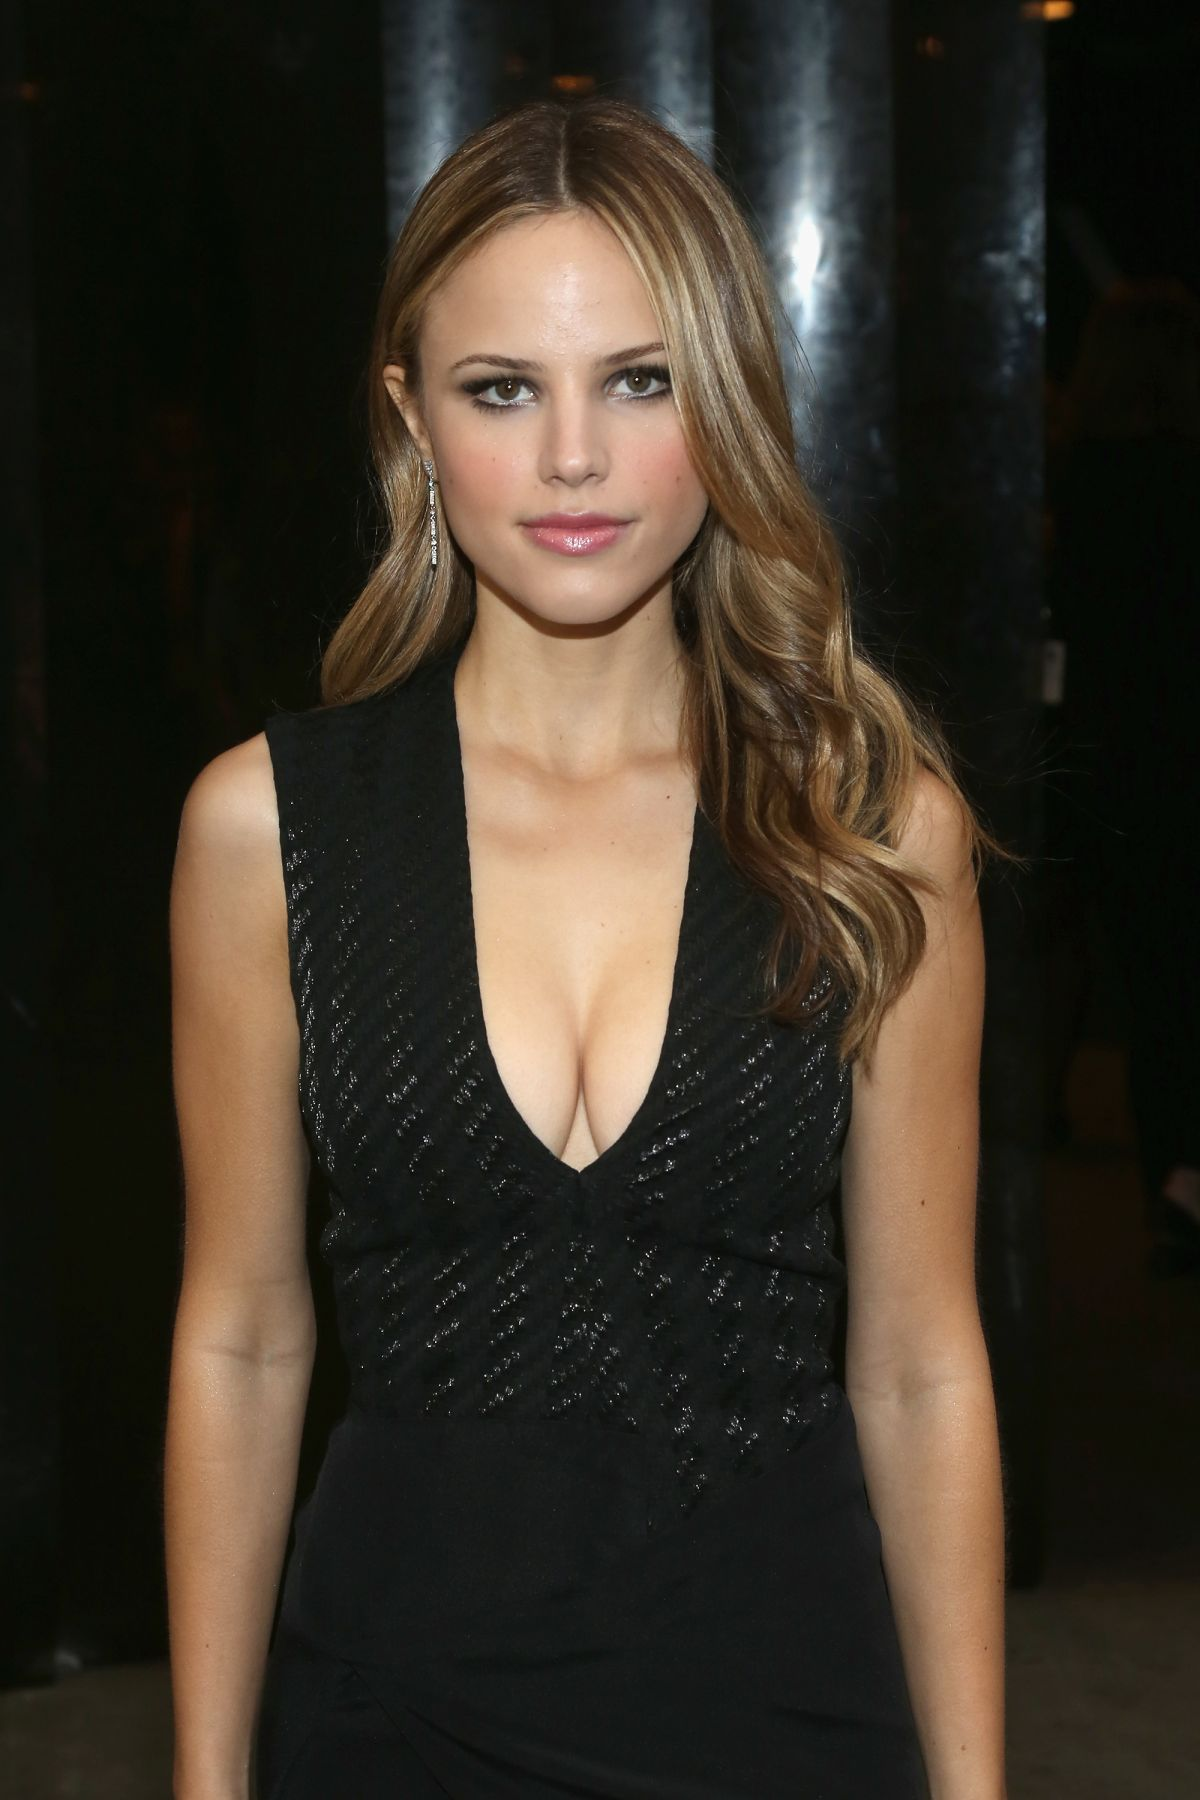 HALSTON SAGE Out and About at Fashion Week in New York 09/13/2015